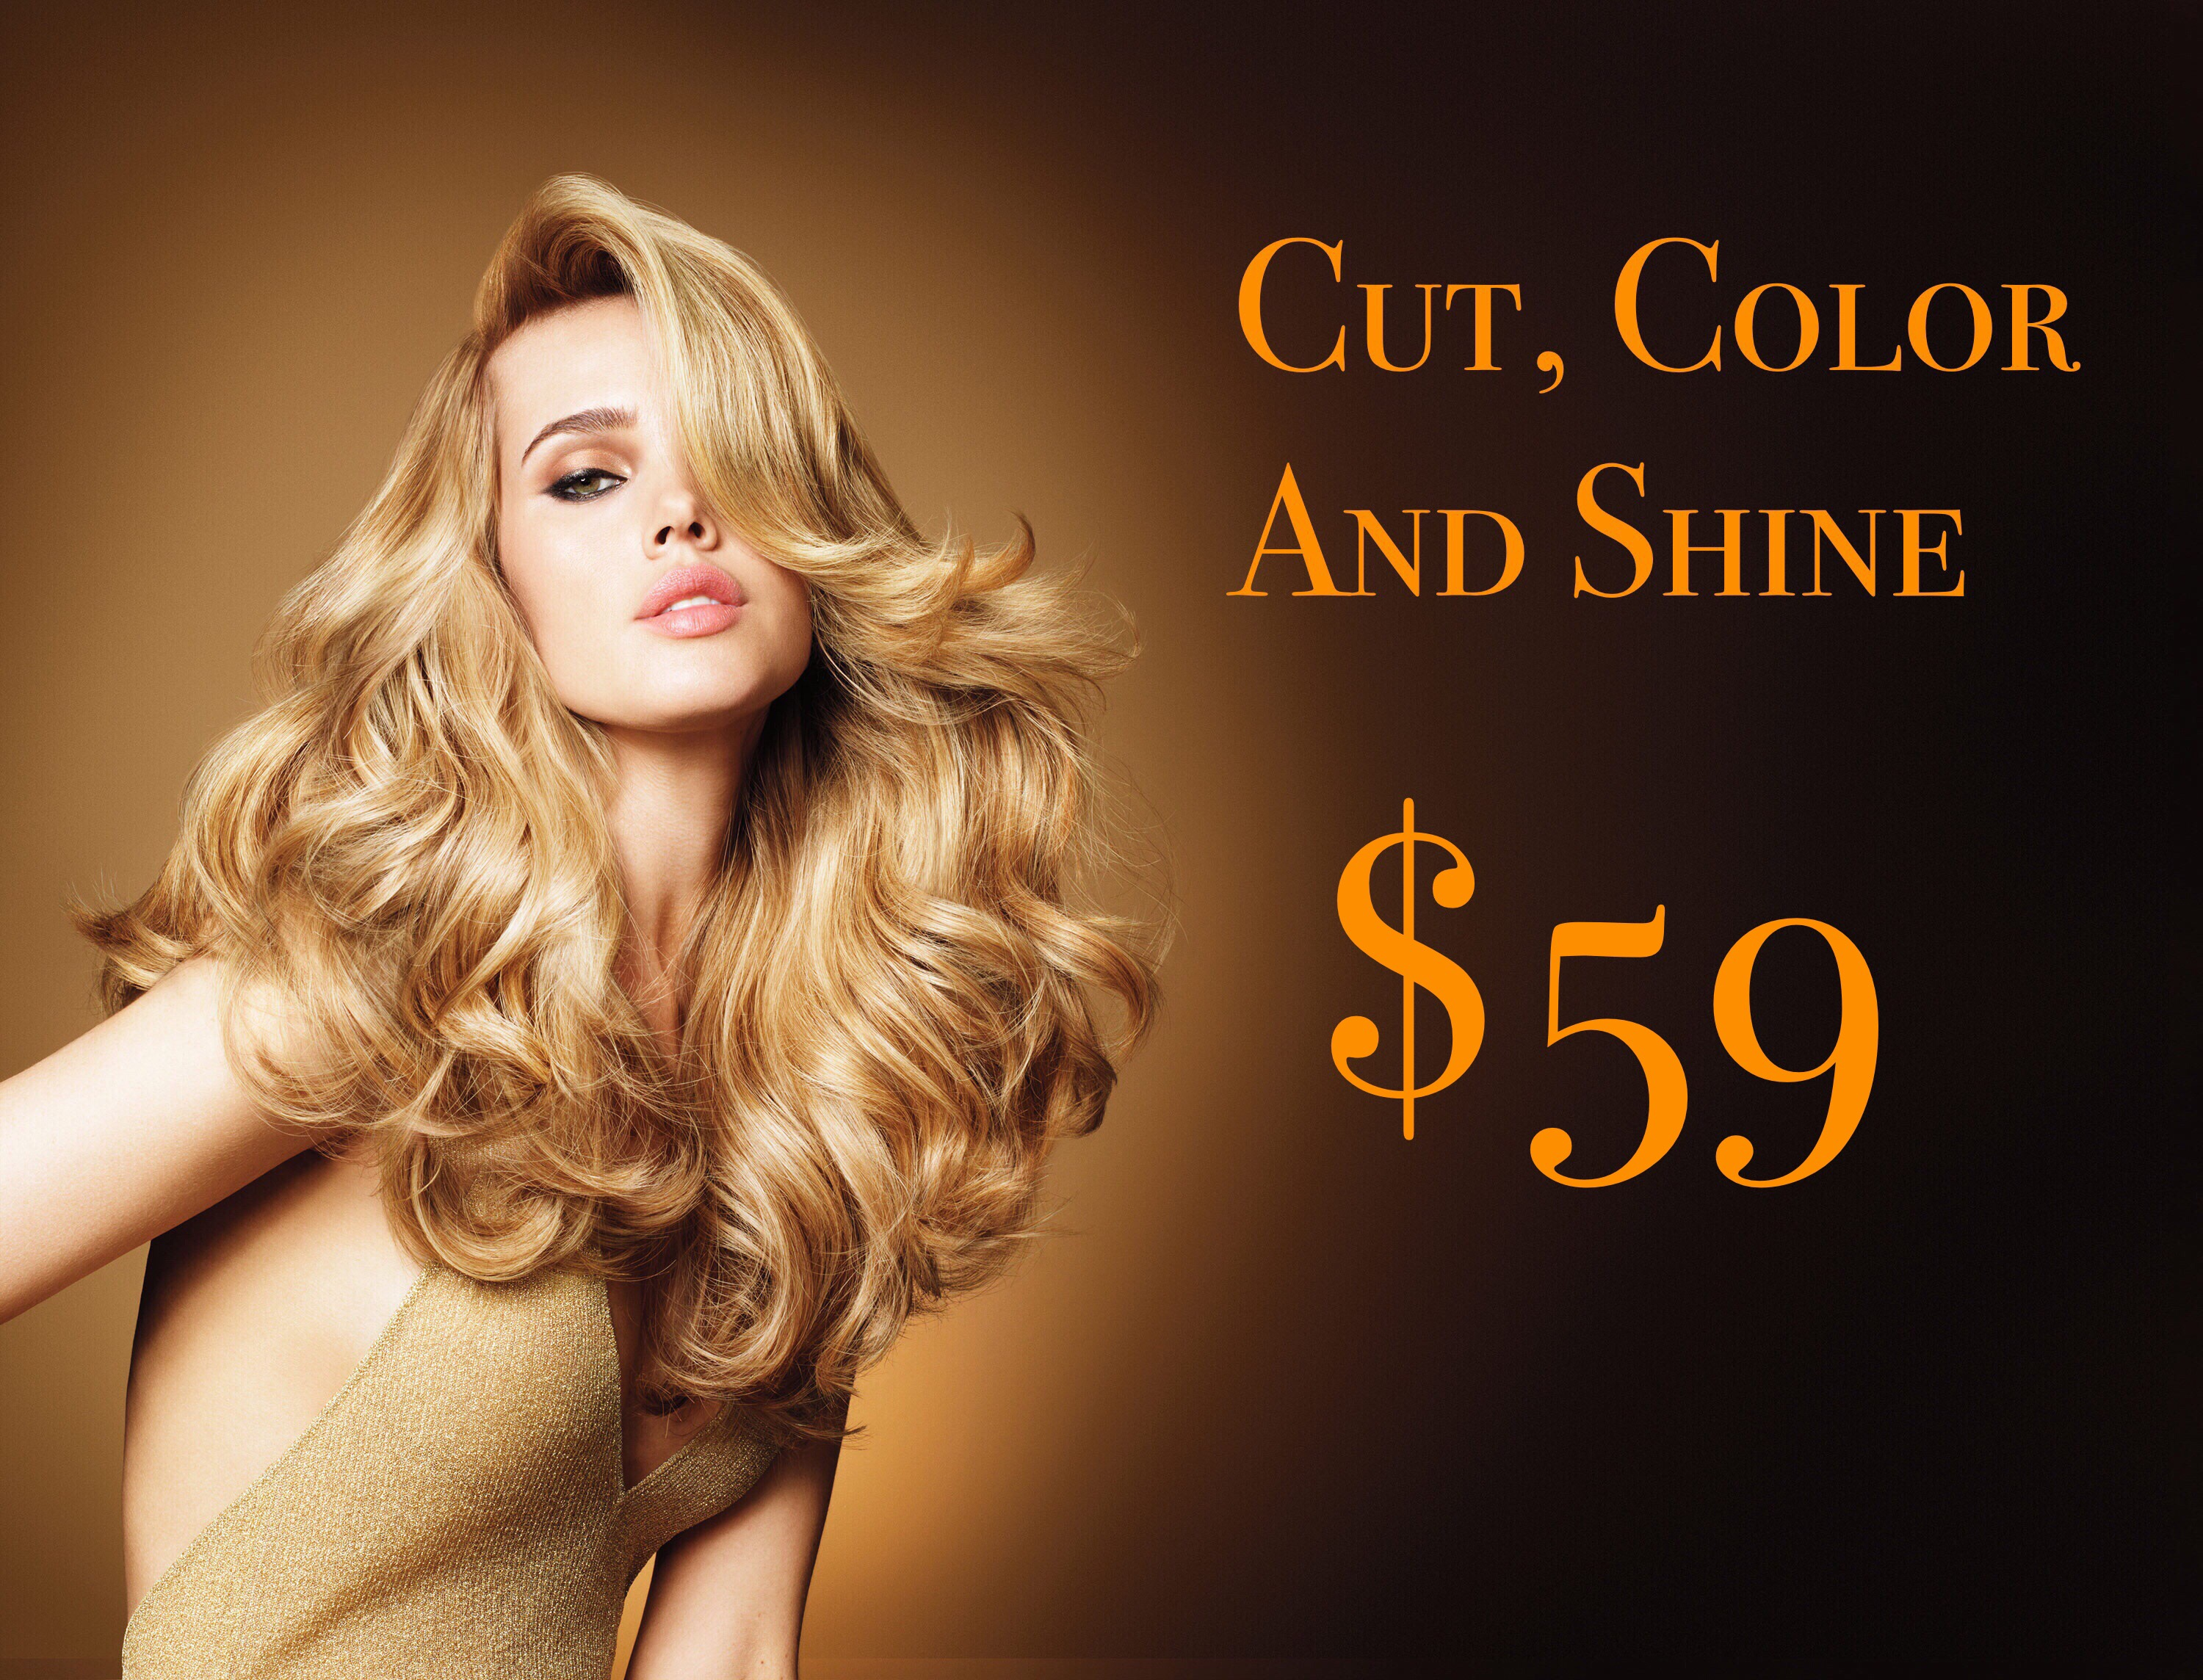 Cut Color And Shine At Hair Color Xperts Inc Hair